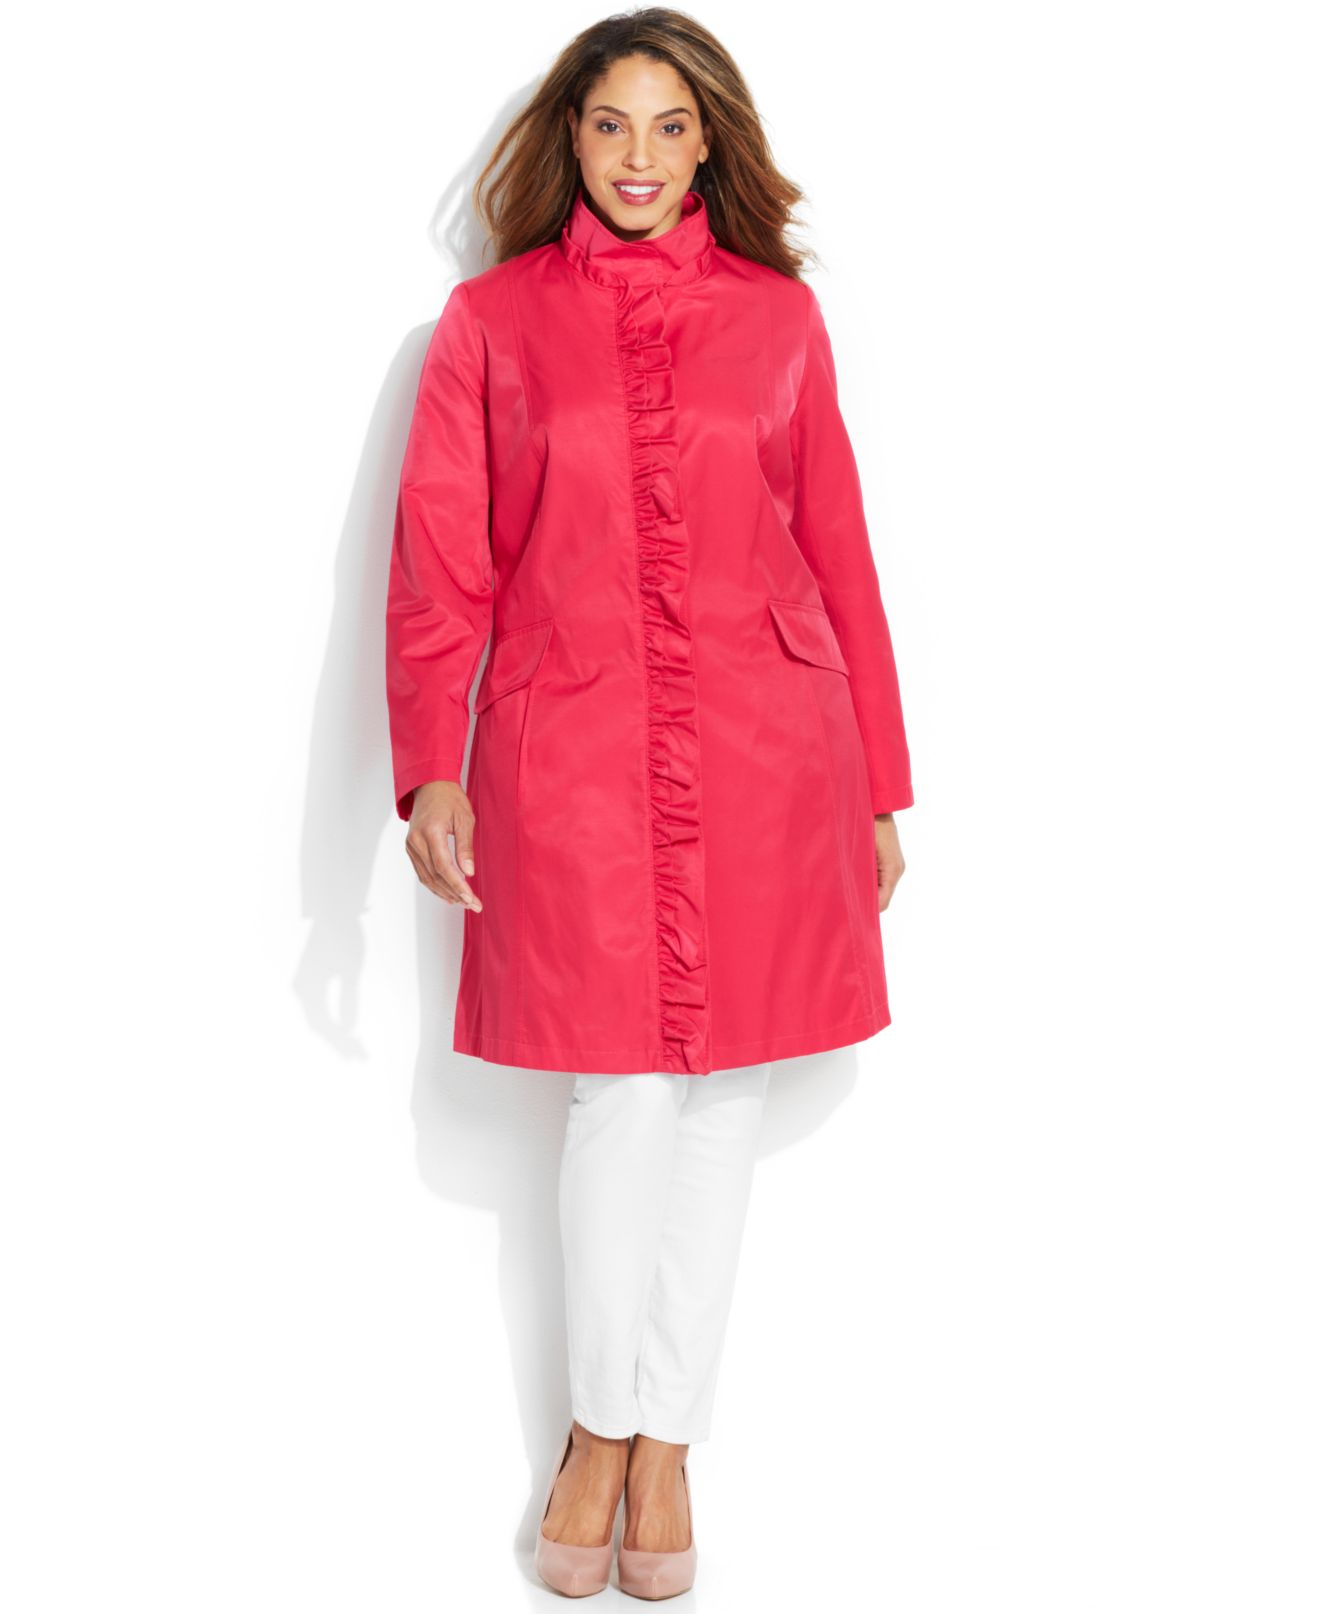 Dkny Plus Size Ruffled A-Line Raincoat in Pink | Lyst